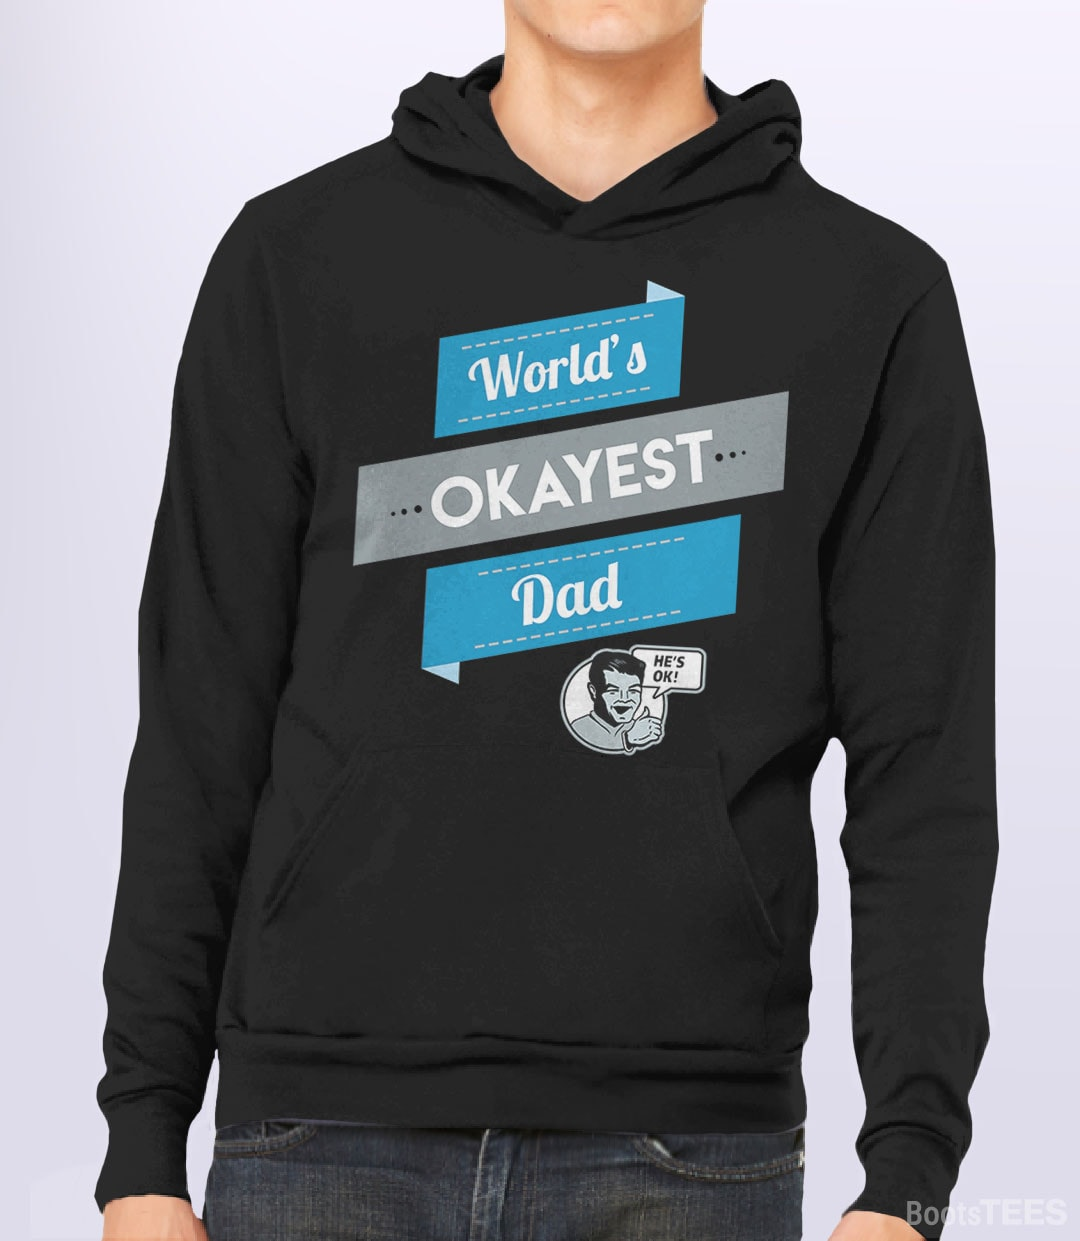 """Worlds Okayest Dad"" Funny Gift for Dad Hoodie 